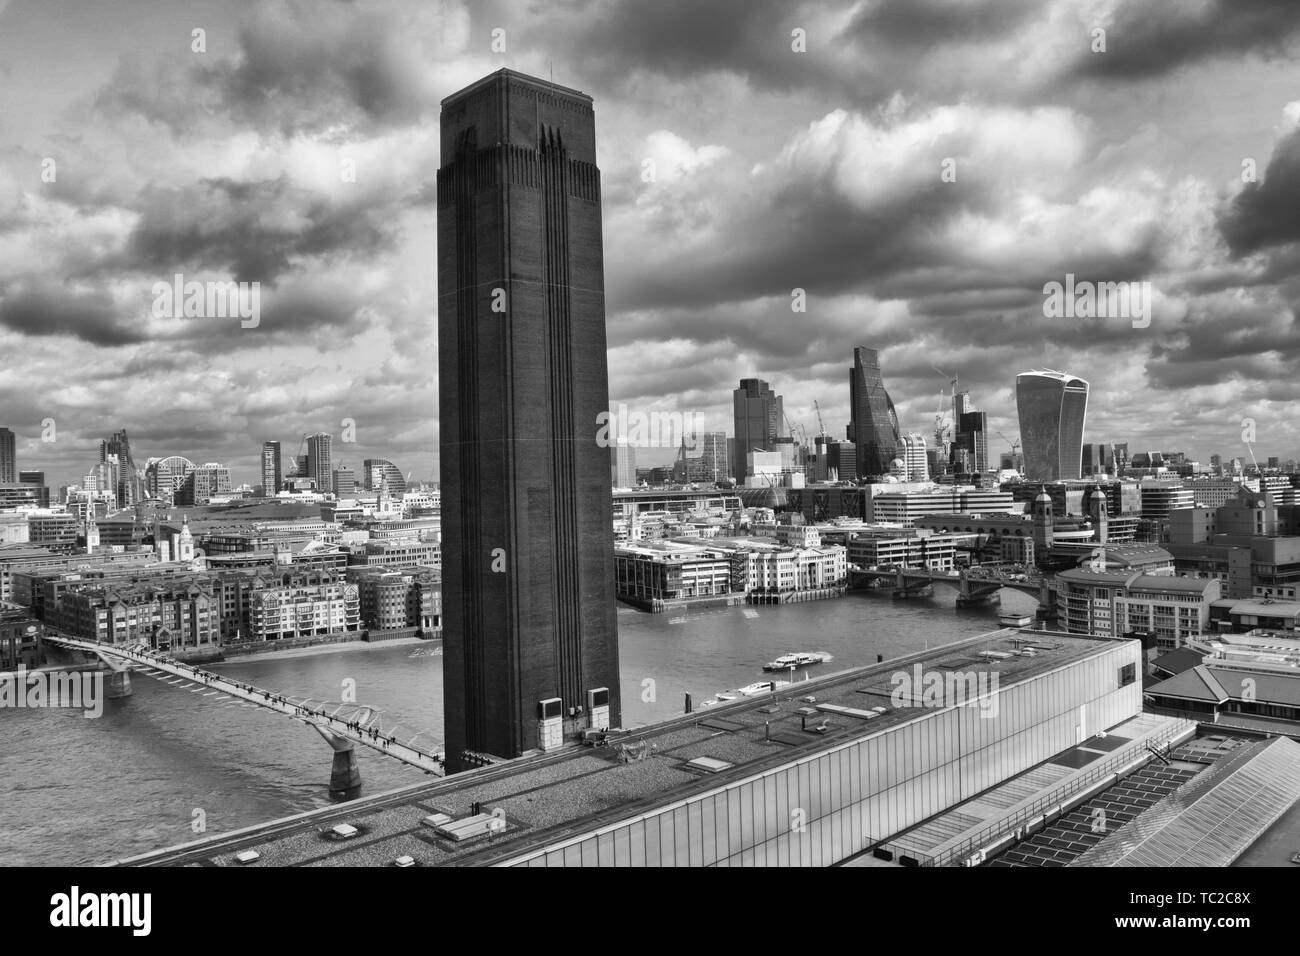 City view across London and the river Thames - Stock Image